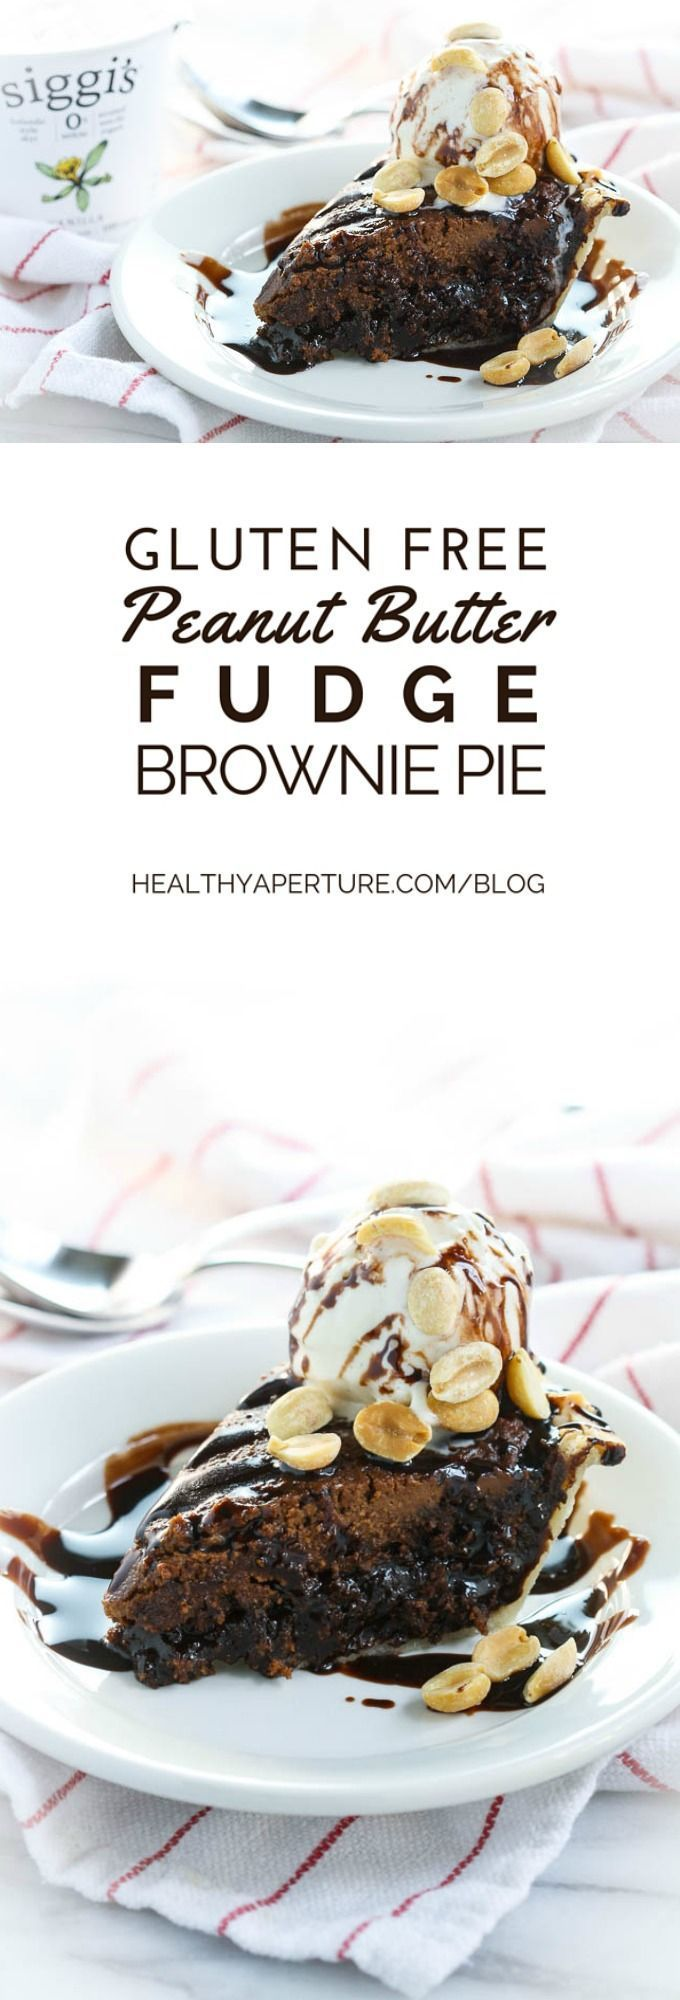 Turn two dessert favorite recipes - peanut butter fudge and brownies - into a gluten free pie that's perfect for the holidays {ad}